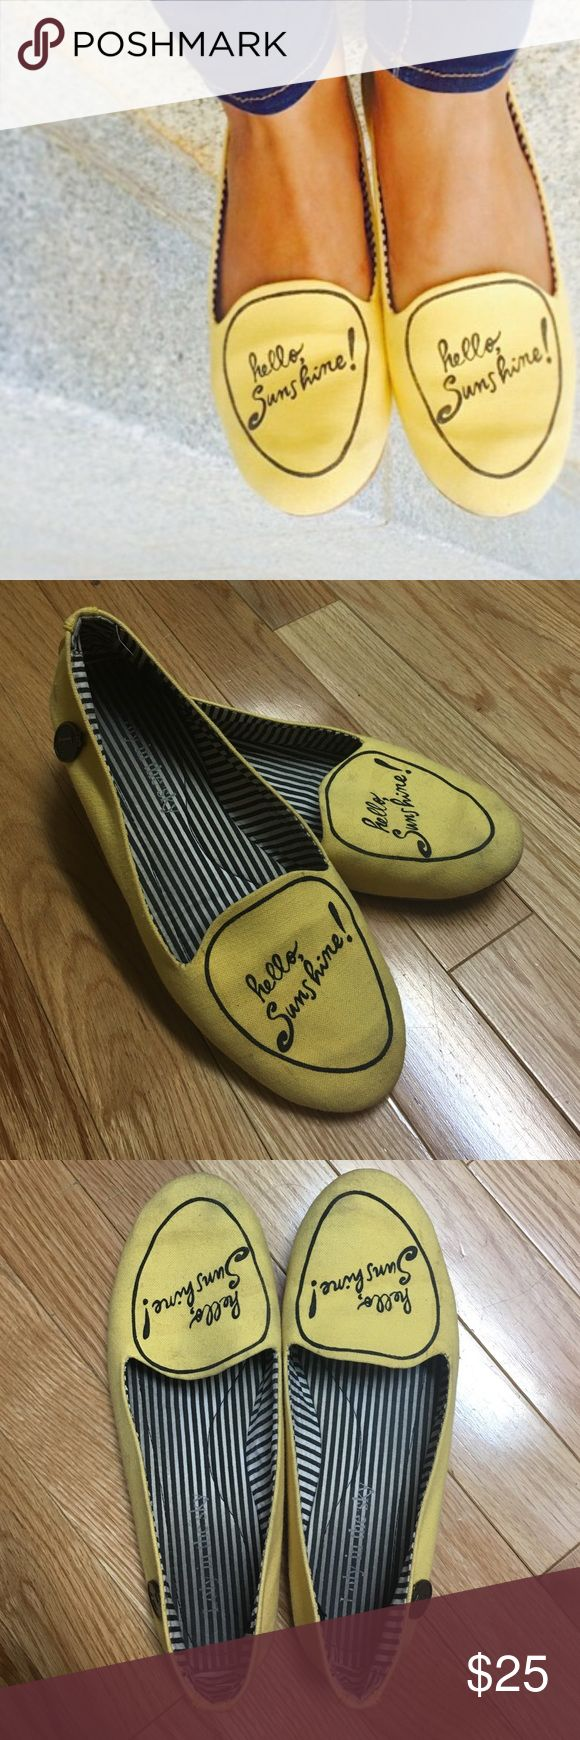 {modcloth} Chance Greeting Flat Yellow fabric flats by Loly in the Sky that send you encouraging messages from your feet all day. Worn but still lots of good wear left! Some staining on the but nothing very visible when wearing. ModCloth Shoes Flats & Loafers